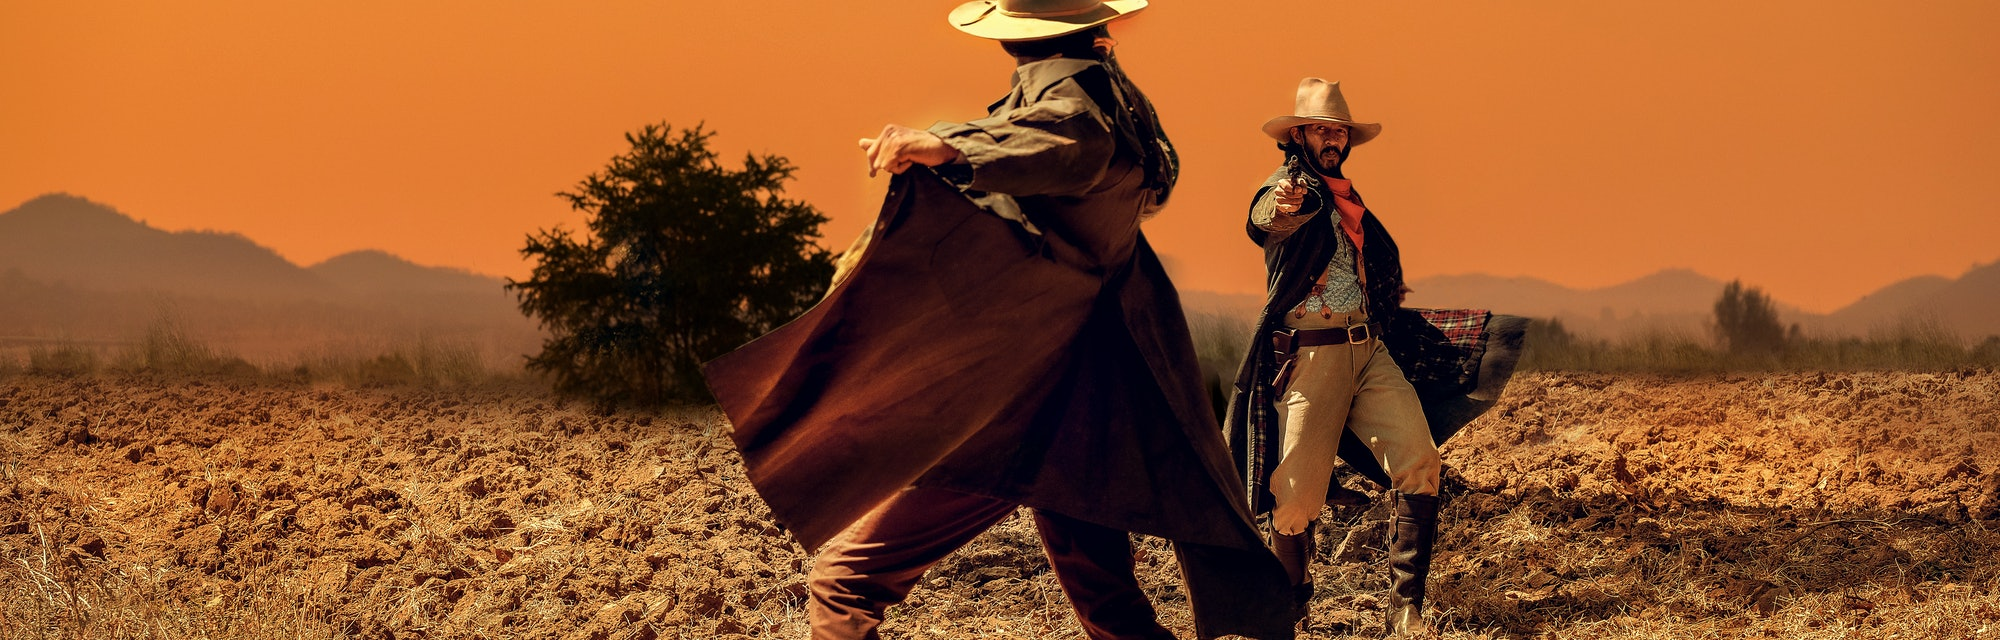 Cowboy Life: pistol shooting in a cowboy action shooting competition under sunset ,duel between cowb...